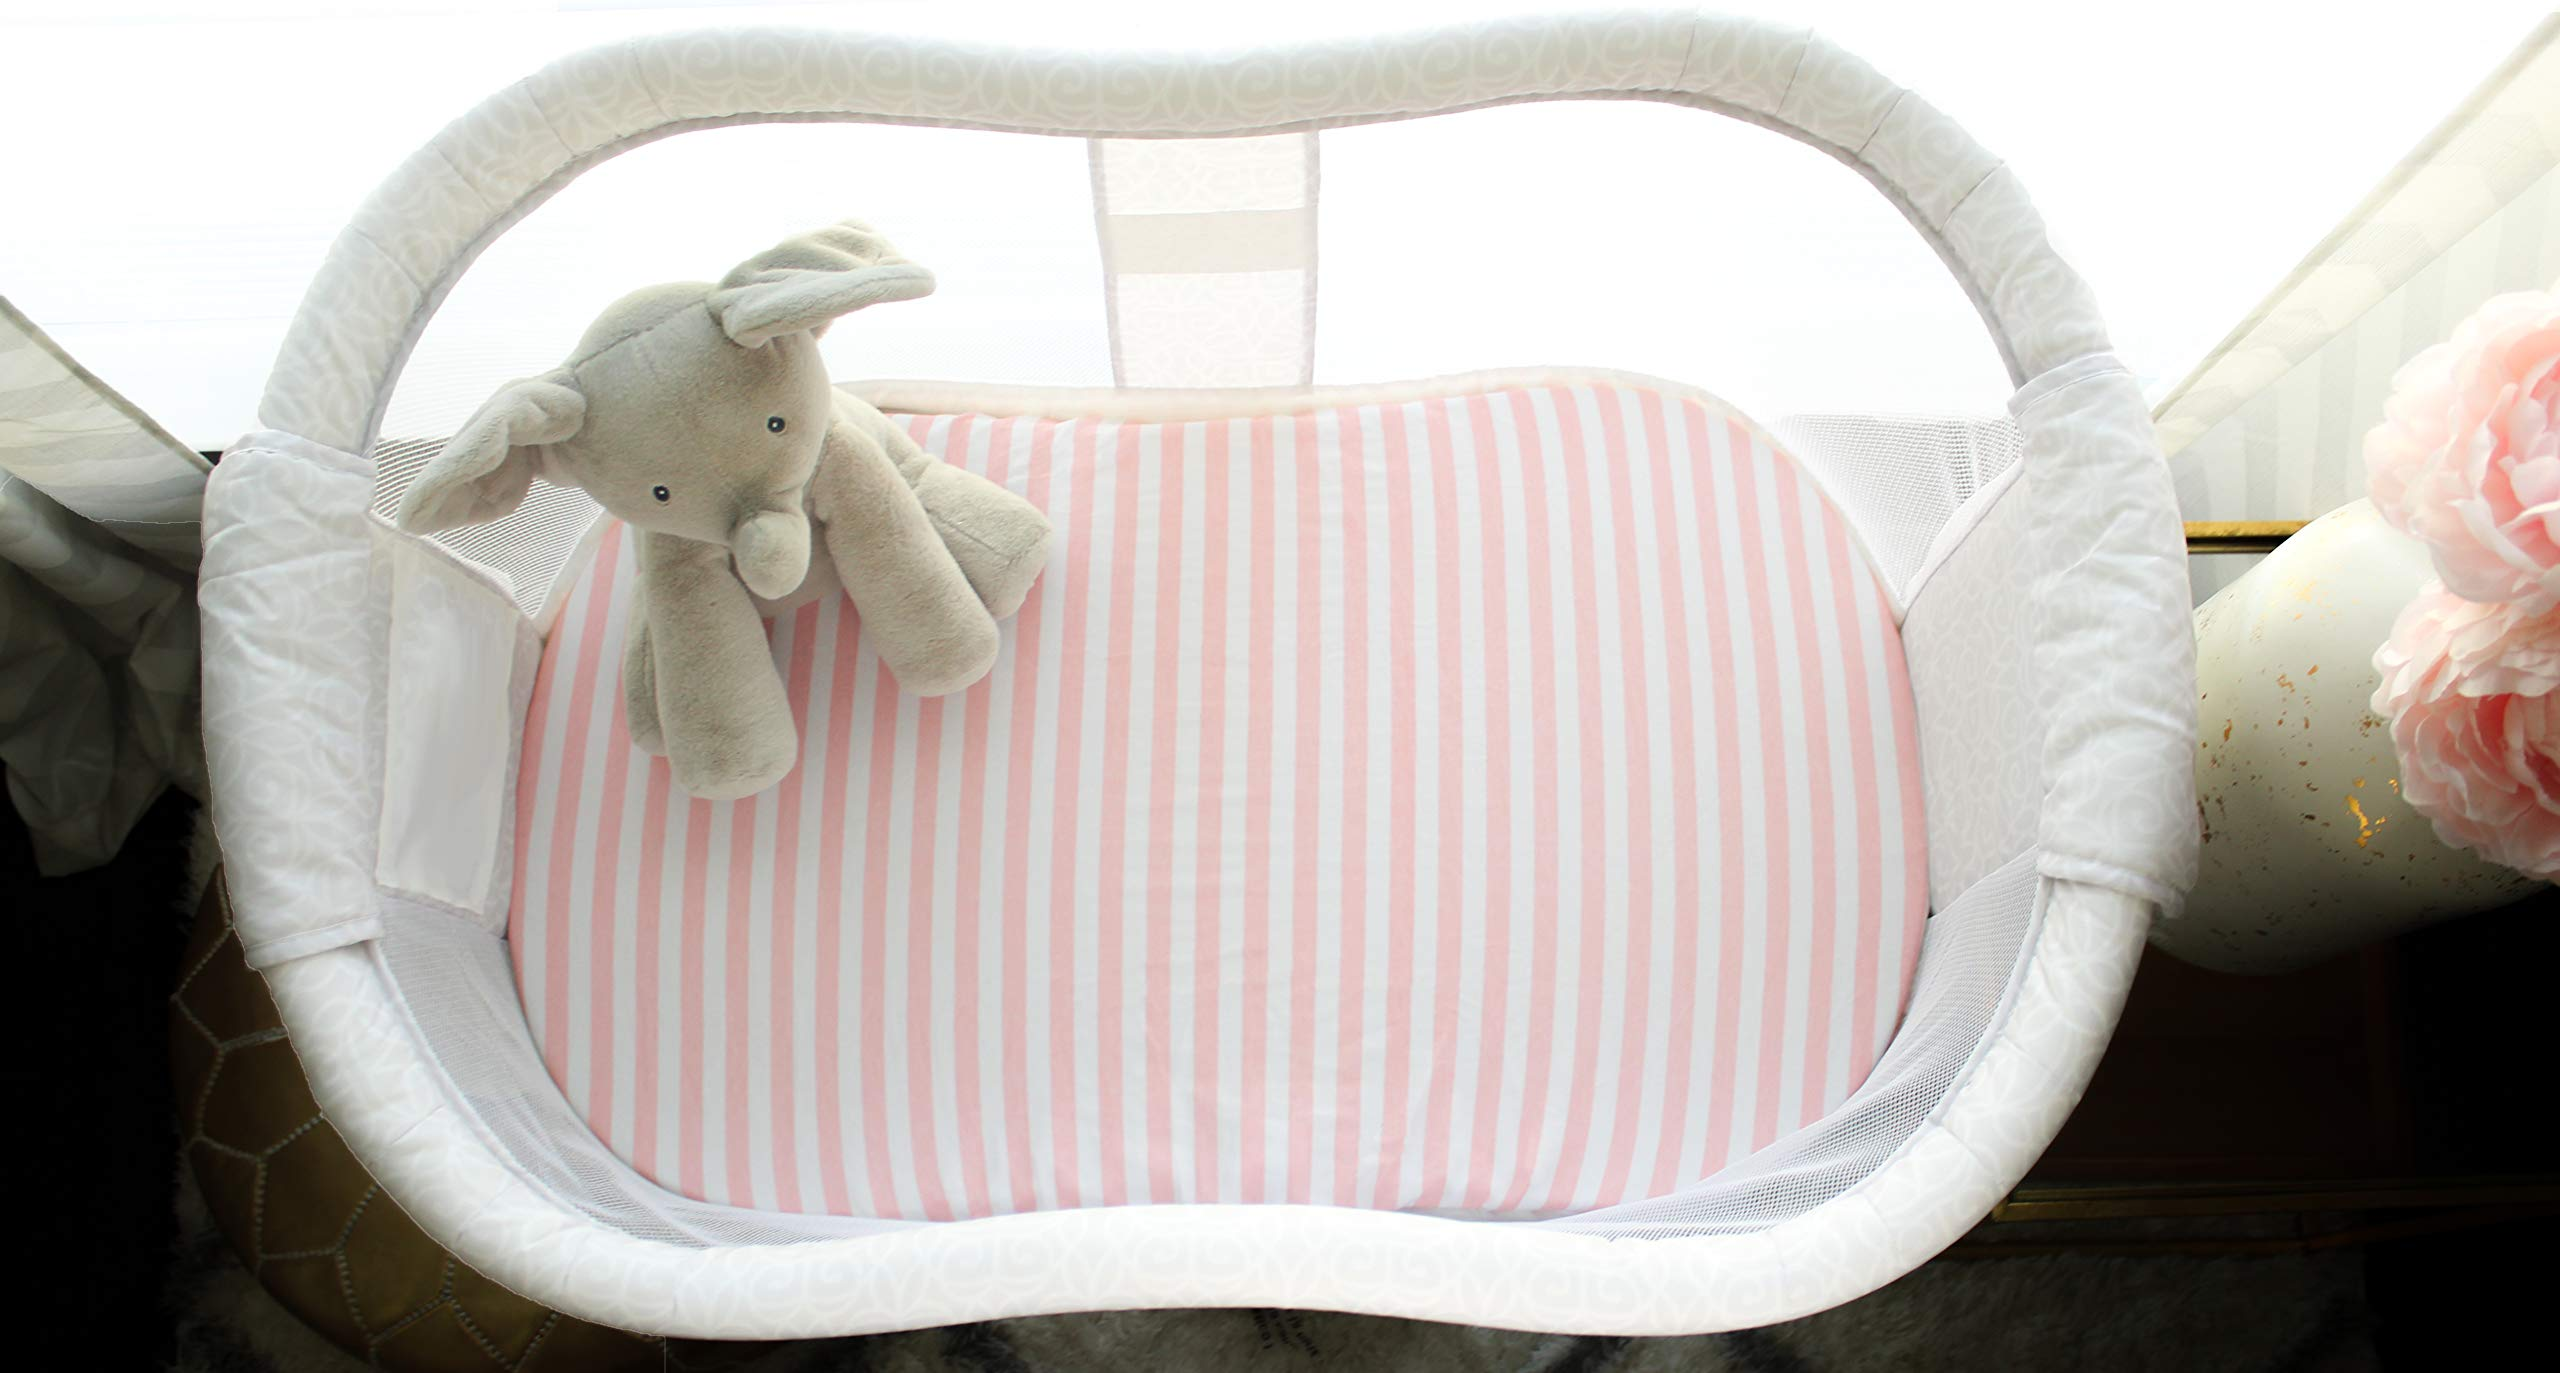 NODNAL CO. Pink Bassinet Fitted Sheet Set 3 Pack 100% Jersey Cotton for Baby Girl - Chevron, Polka Dot and Stripe 160 GSM Sheets by NODNAL CO. (Image #3)